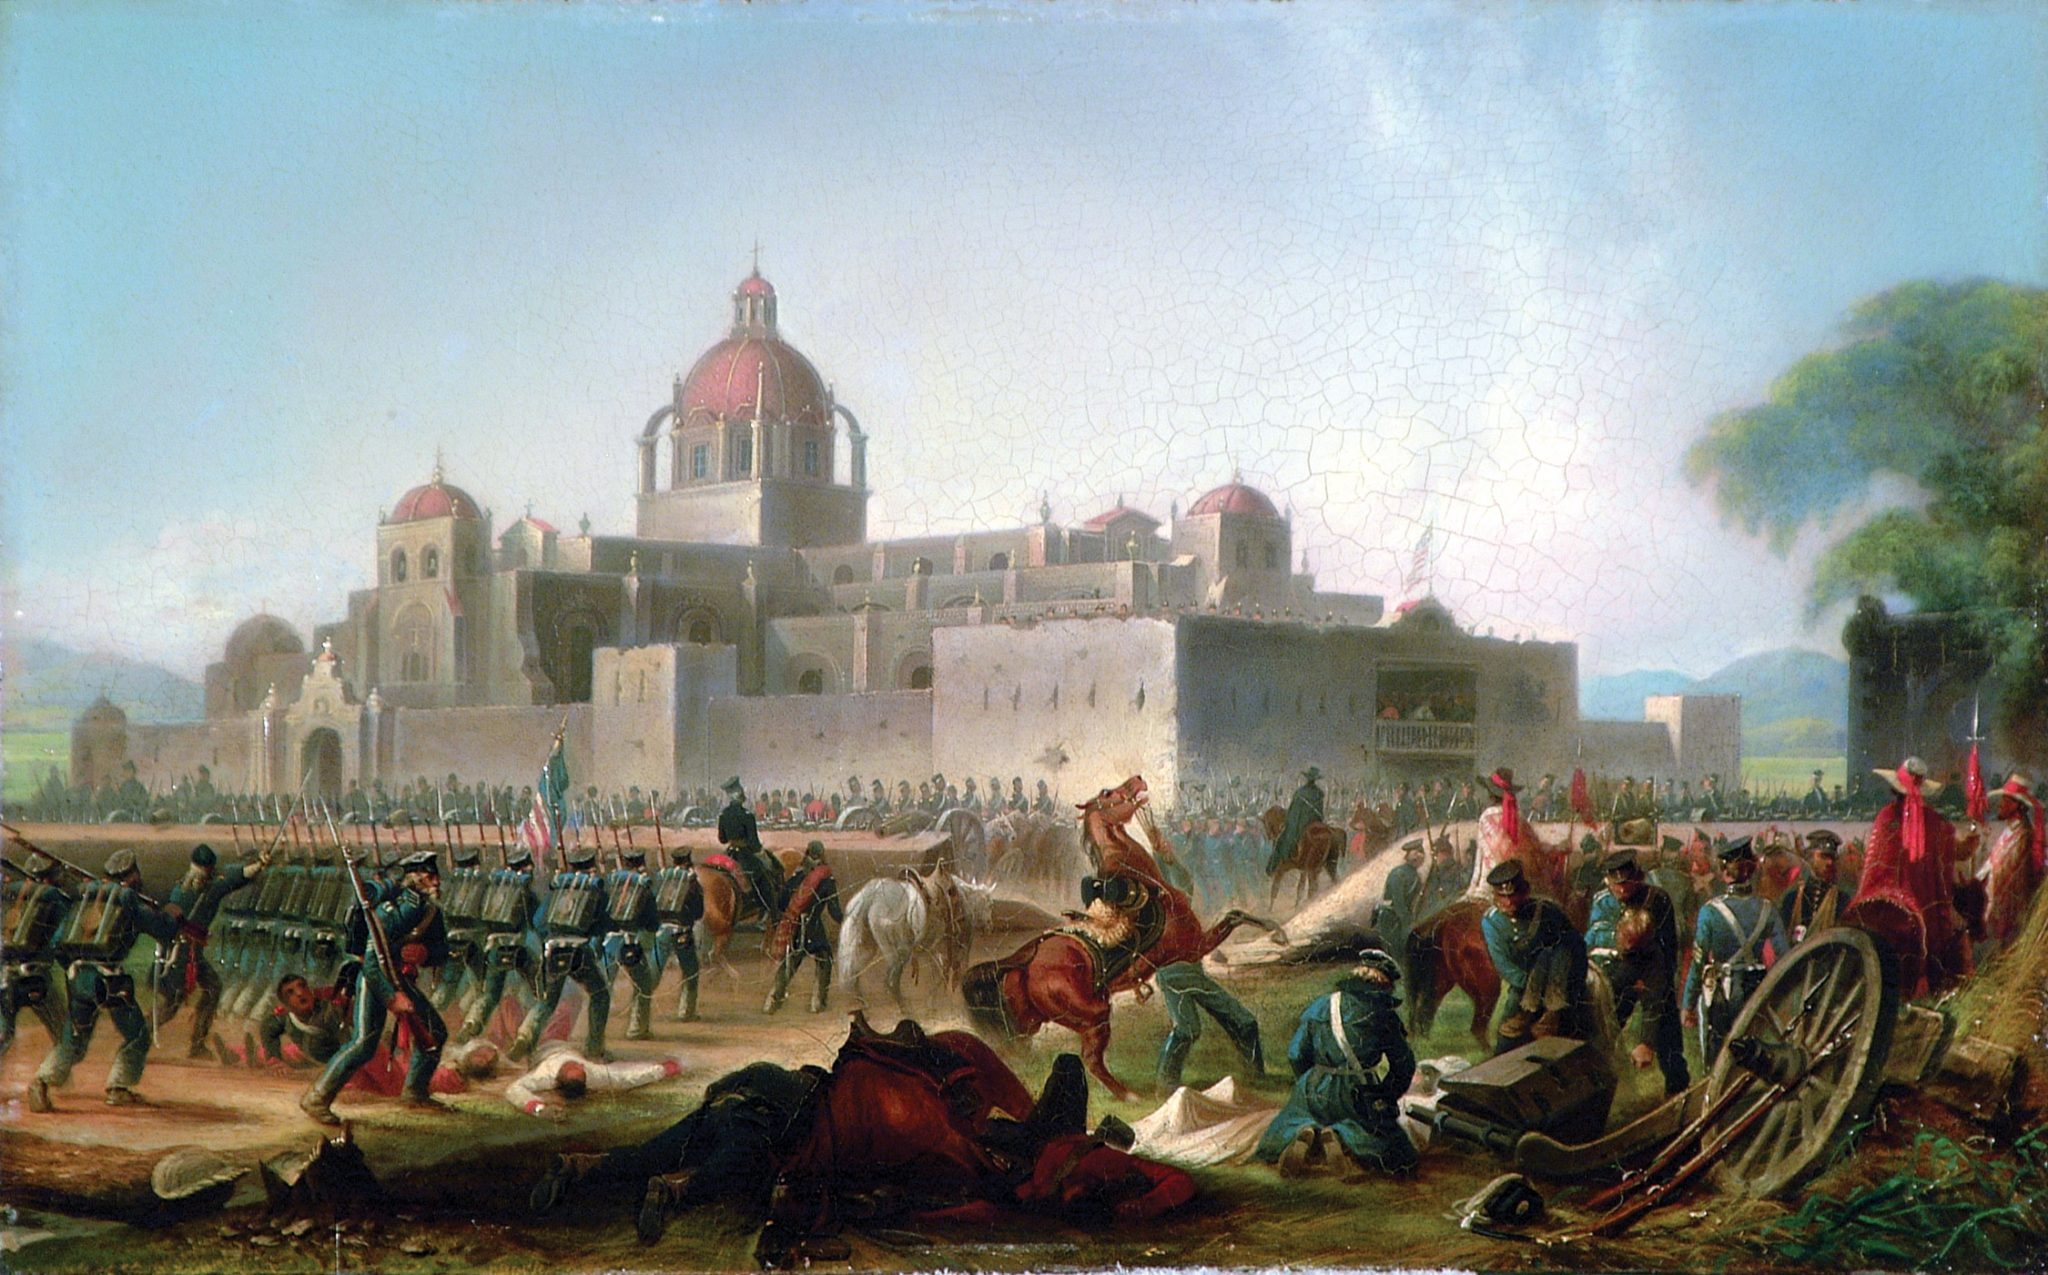 American infantry, led by the 3d Infantry Regiment, march forward against Mexican forces who have taken up positions in a convent during the bloody Battle of Churubusco, 20 August 1847, in James Walker's 1848 oil on board, Convent at Churubusco. (Army Art Collection)